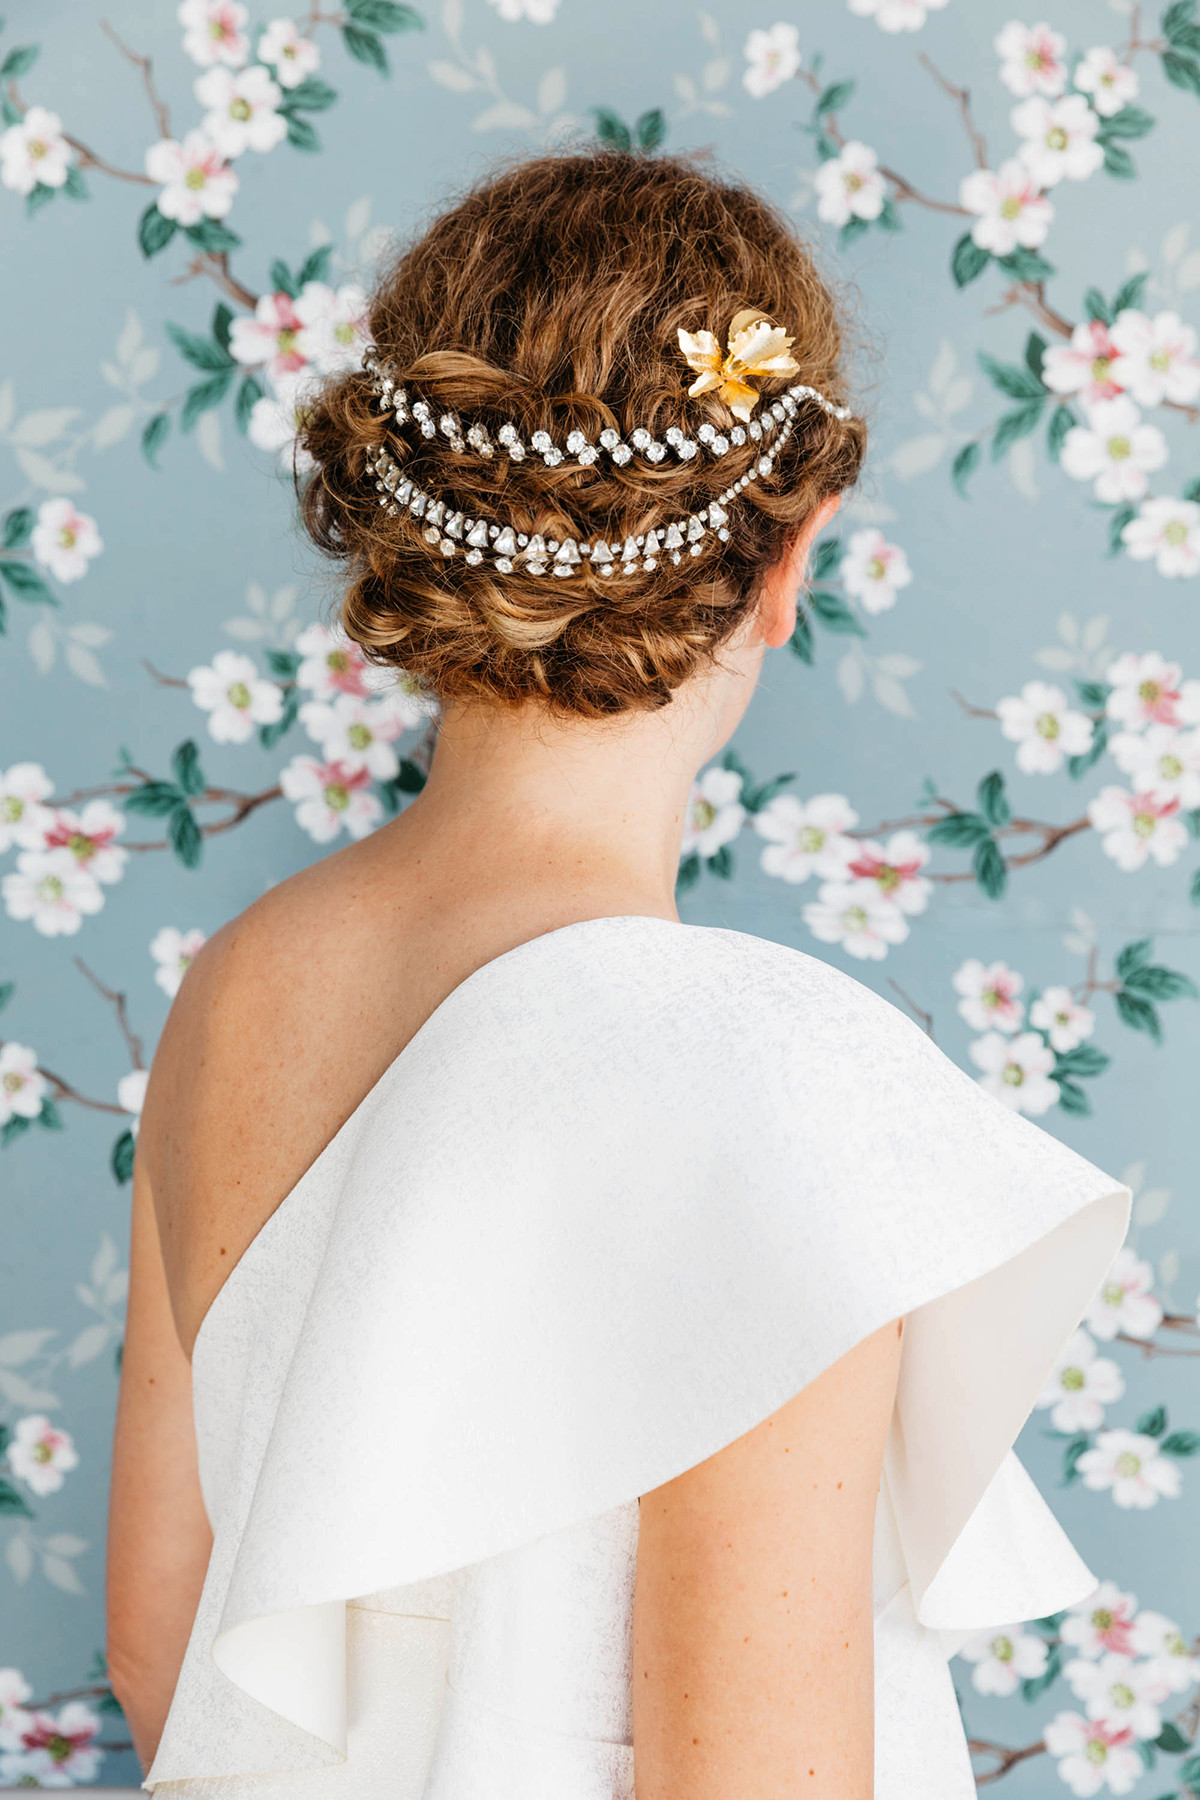 Best ideas about DIY Hair Clips . Save or Pin DIY Hair Accessories With Vintage Jewelry – Honestly WTF Now.